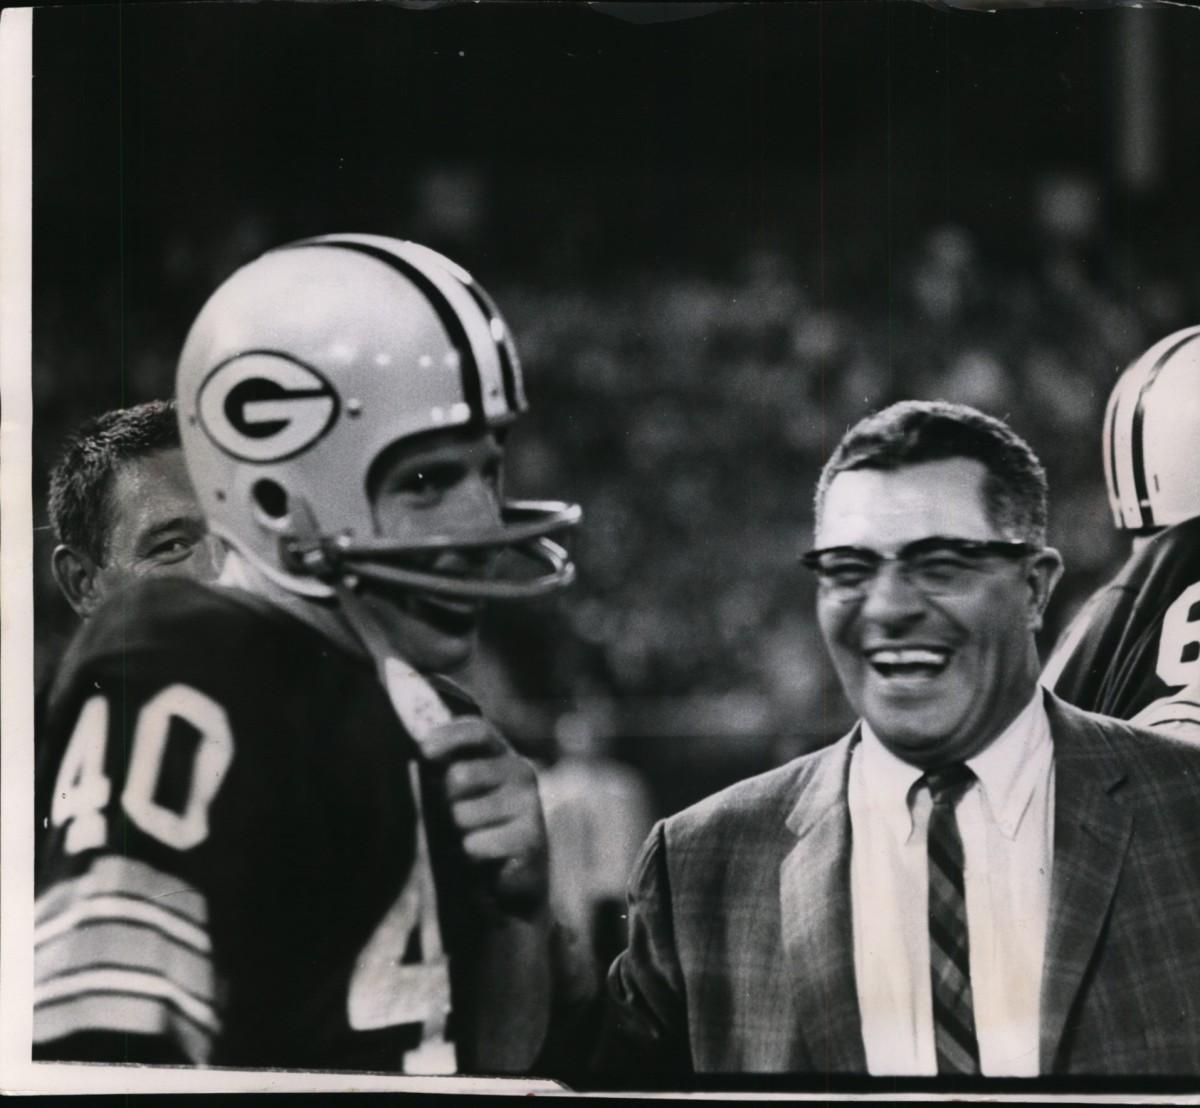 Vince Lombardi helps New Orleans get an NFL Team